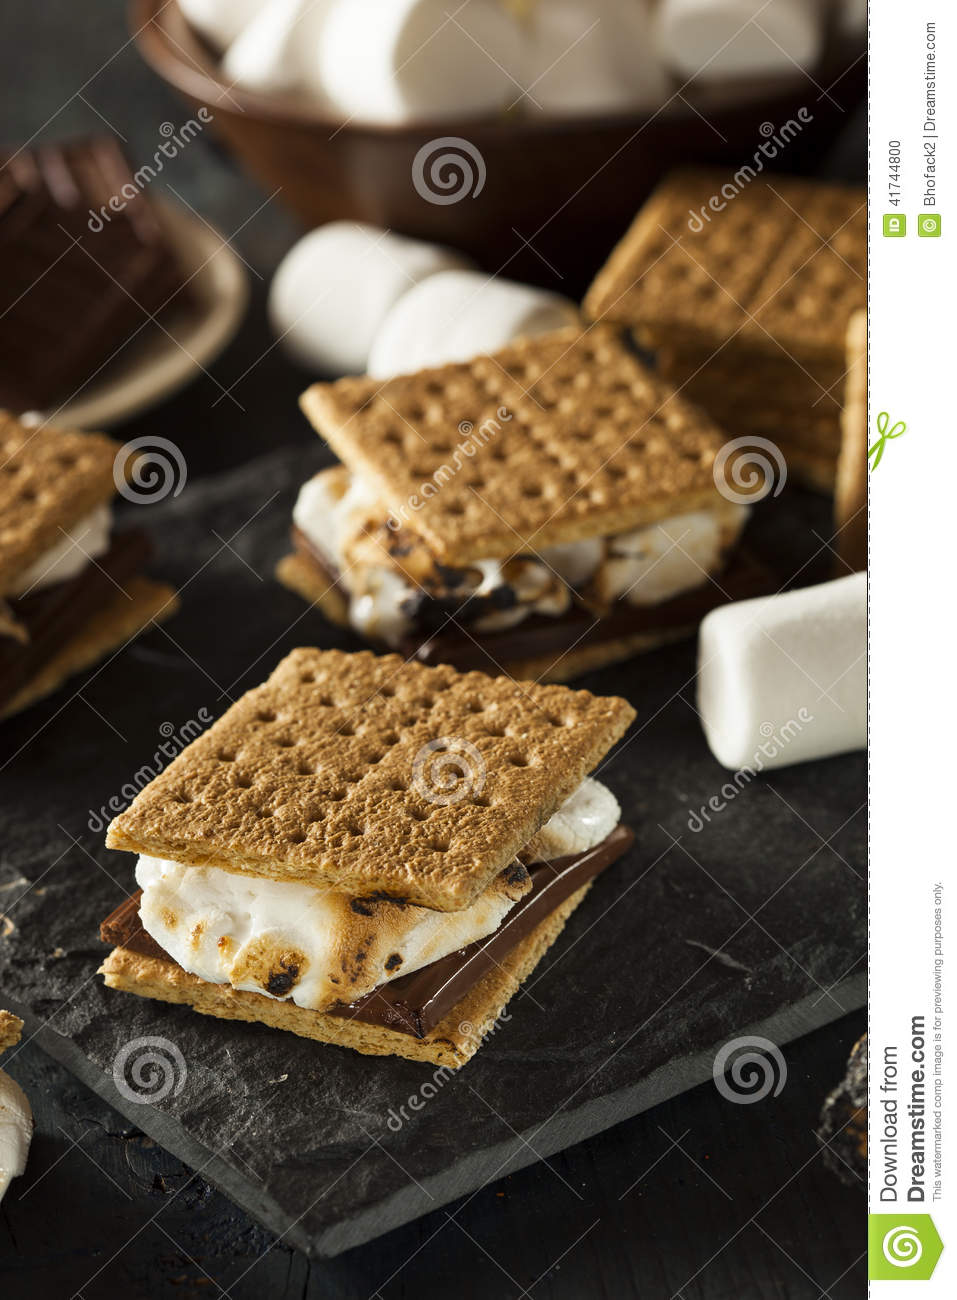 Homemade Chocolate Graham Cracker S'mores Recipes — Dishmaps